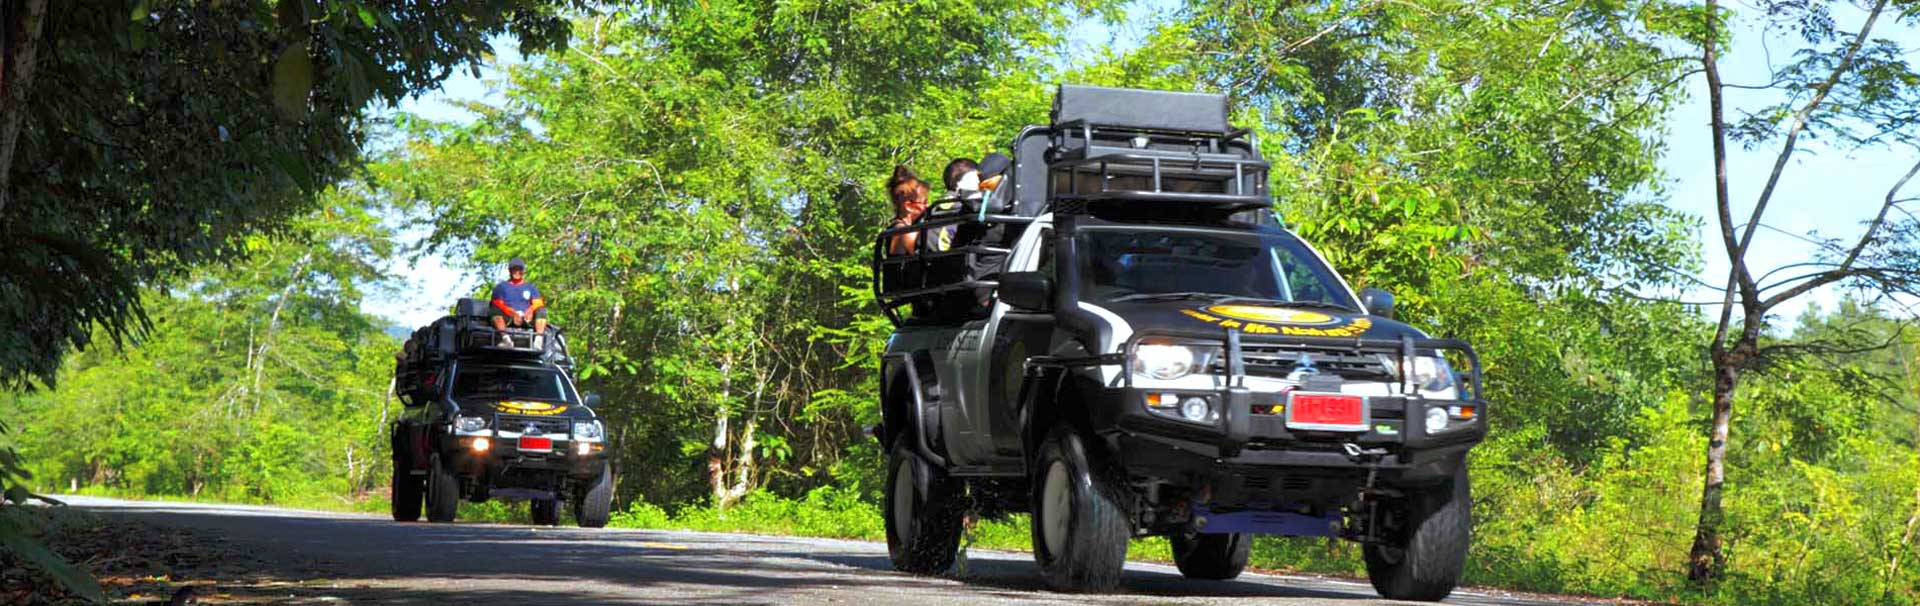 Khao Lak Land's off-road vehicles